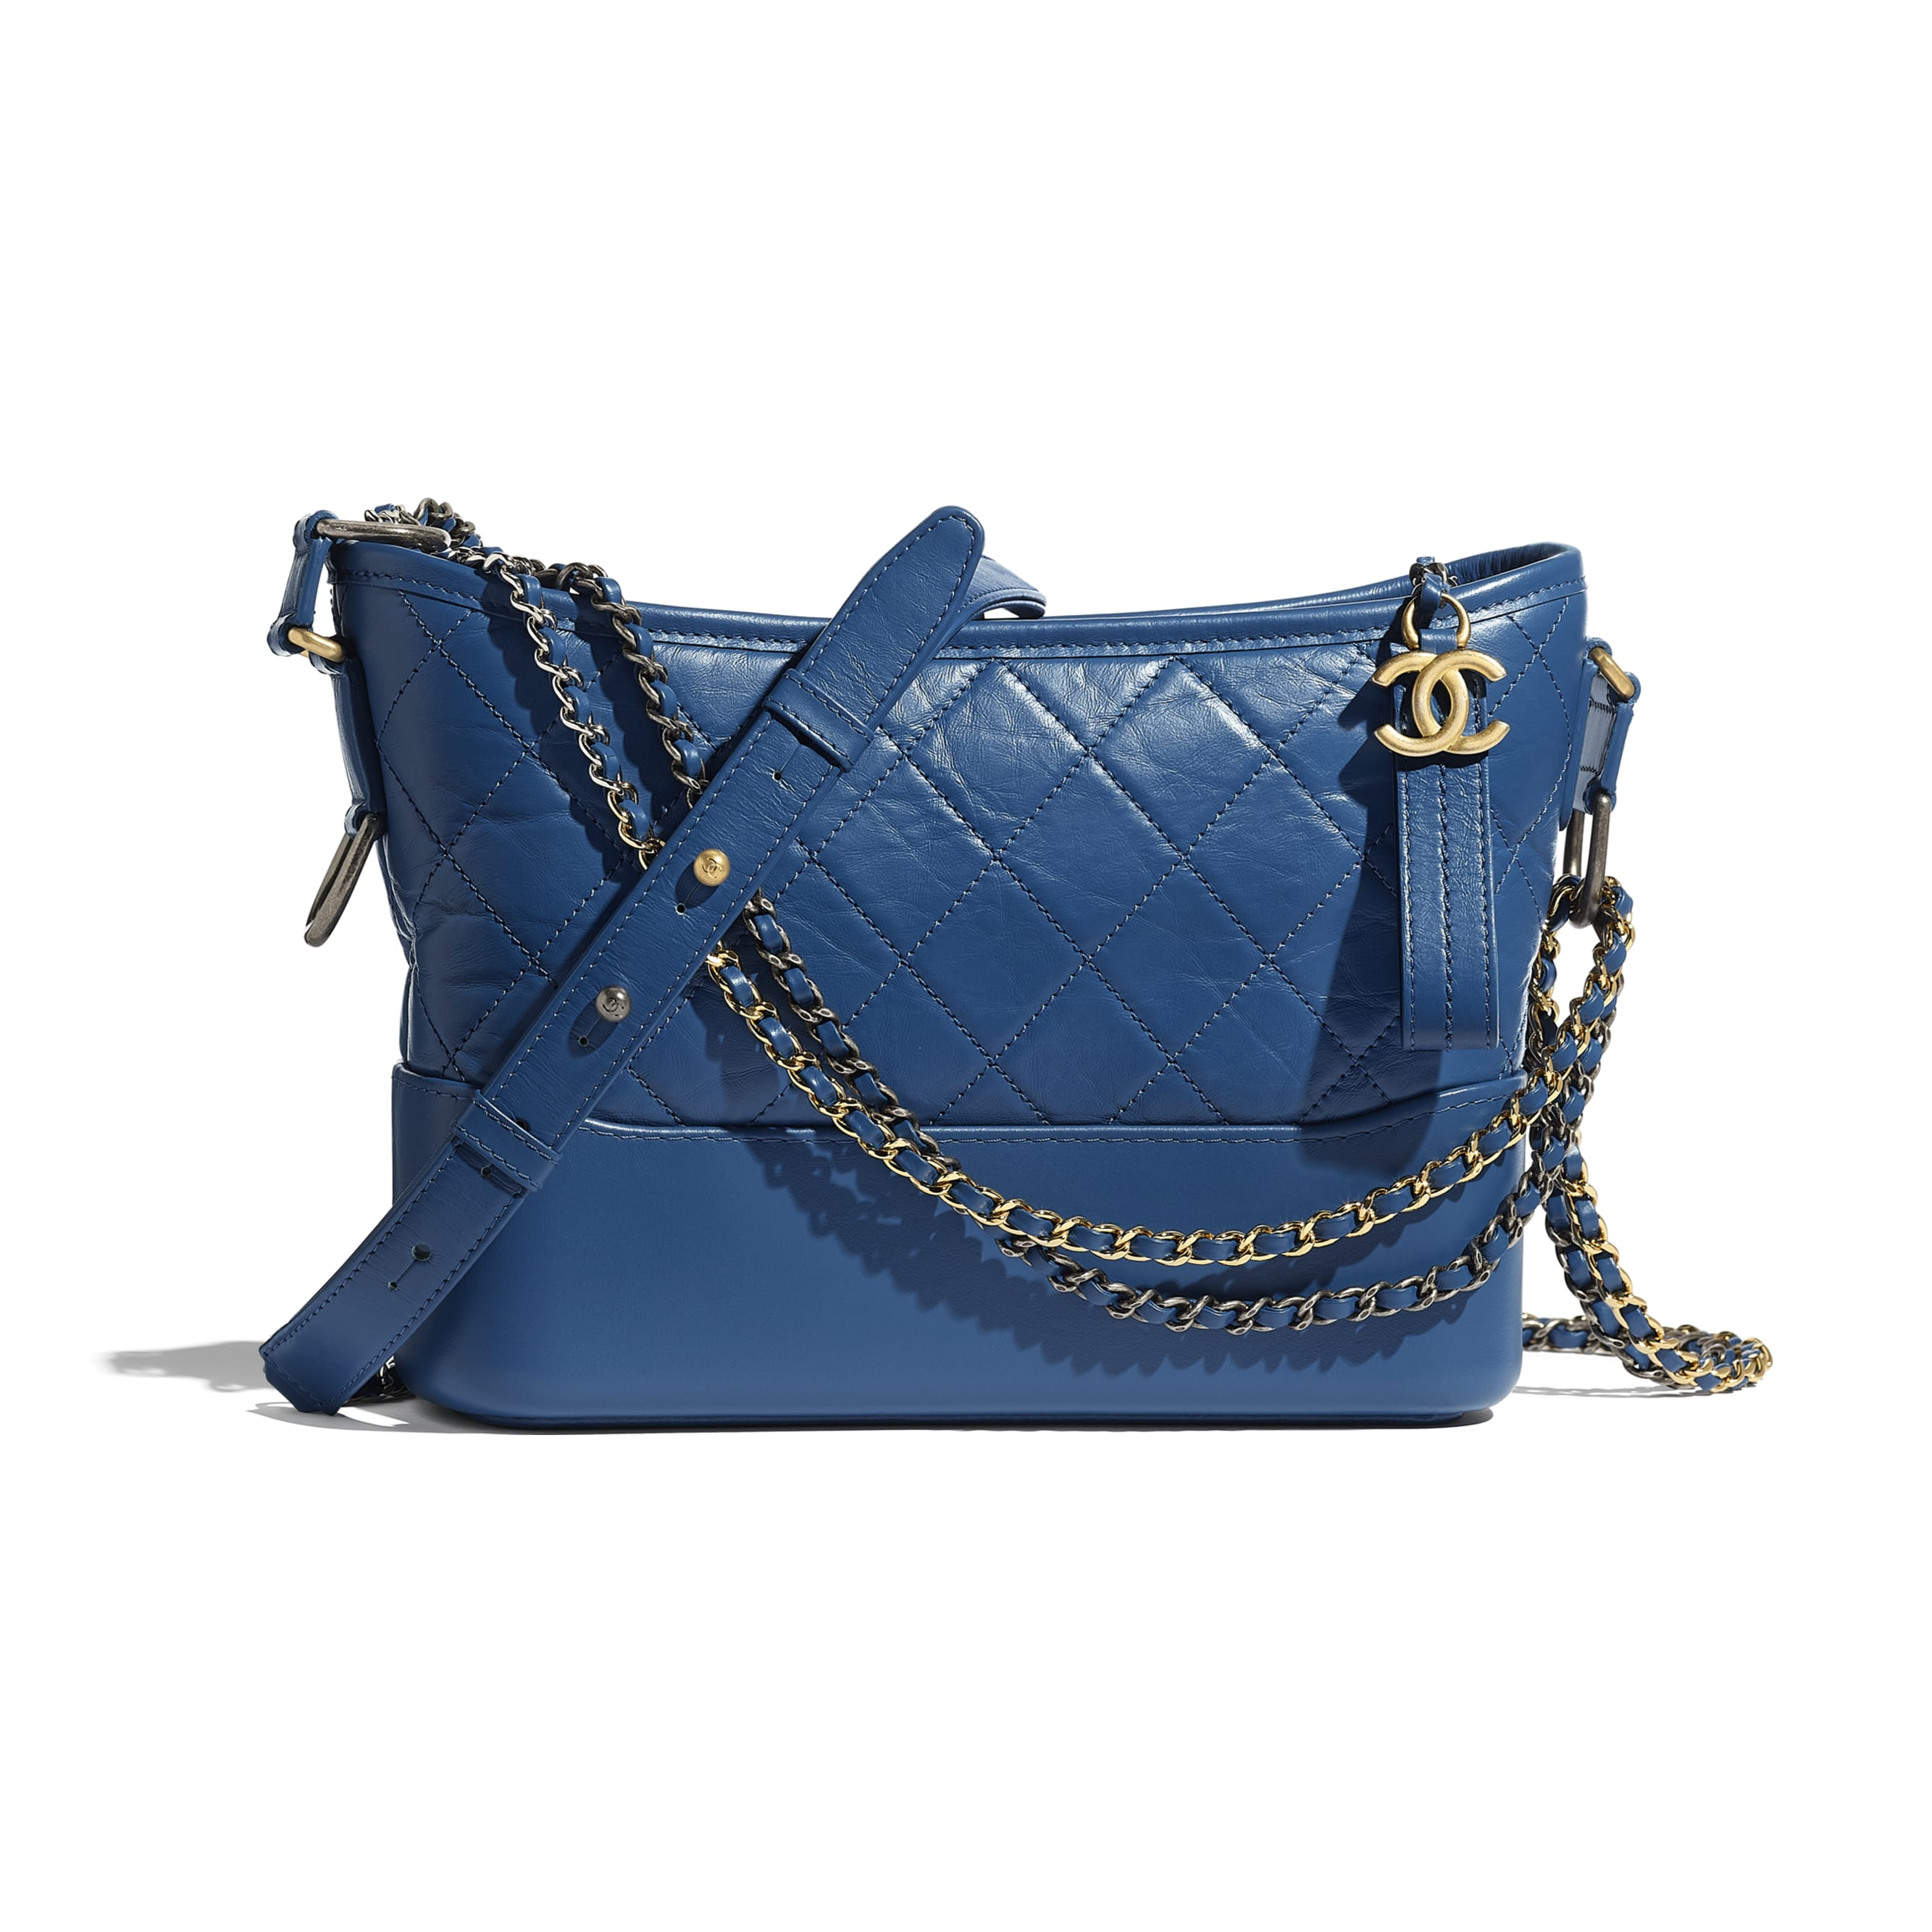 CHANEL'S GABRIELLE Hobo Handbag - Dark Blue - Aged Calfskin, Smooth Calfskin, Gold-Tone, Silver-Tone & Ruthenium-Finish Metal - CHANEL - Default view - see standard sized version